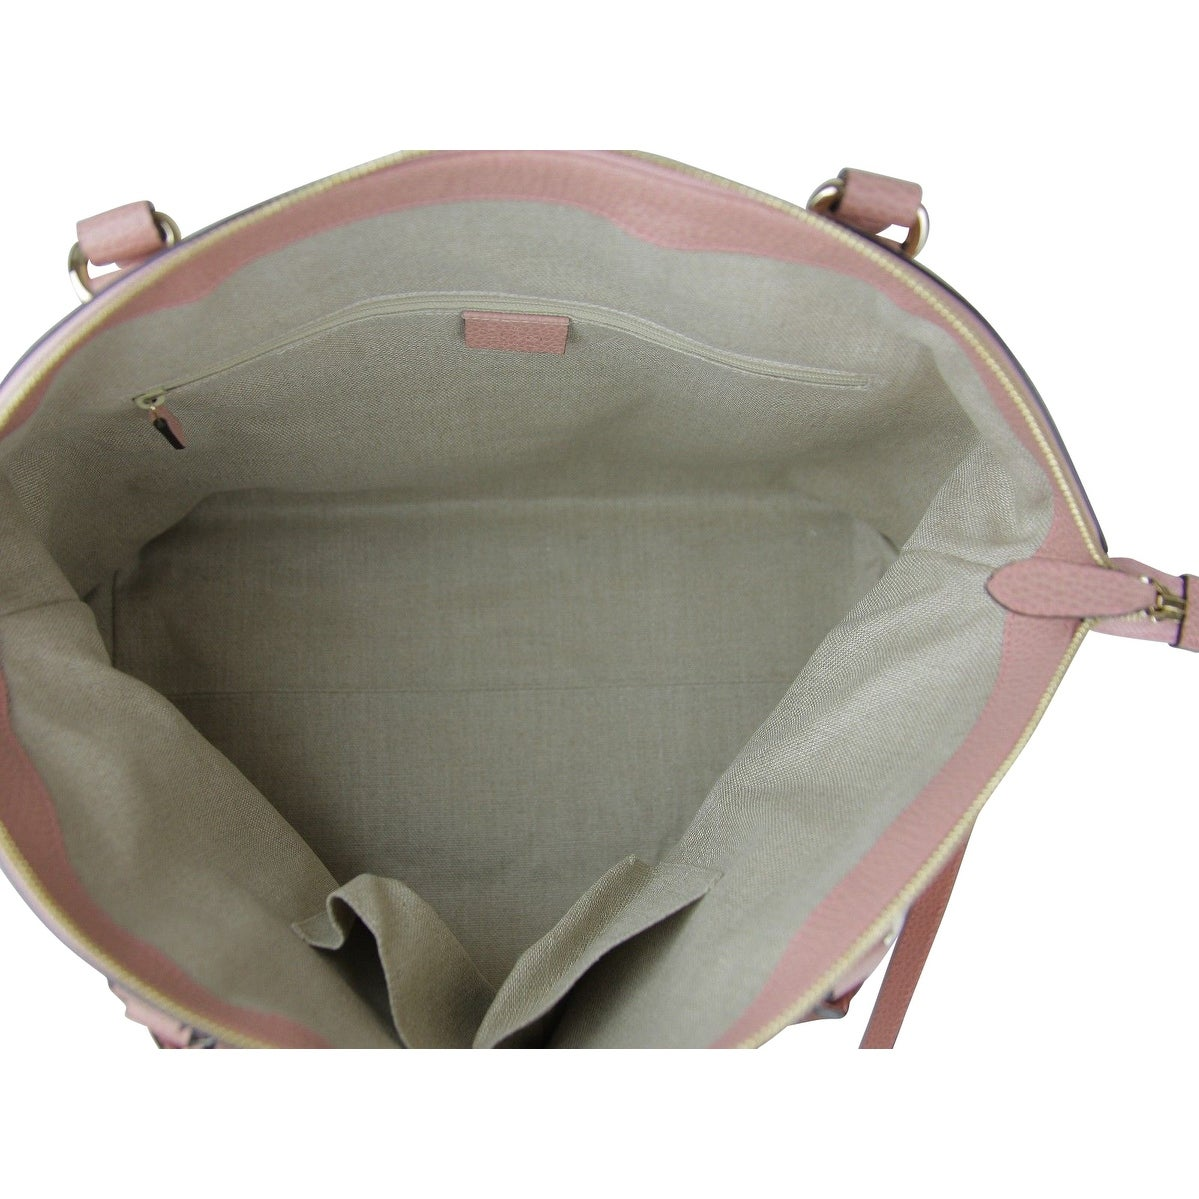 c8f4d10db Shop Gucci GG Charm Powder Pink Leather Large Convertible Dome Bag with Strap  449660 5806 - Free Shipping Today - Overstock - 27603269